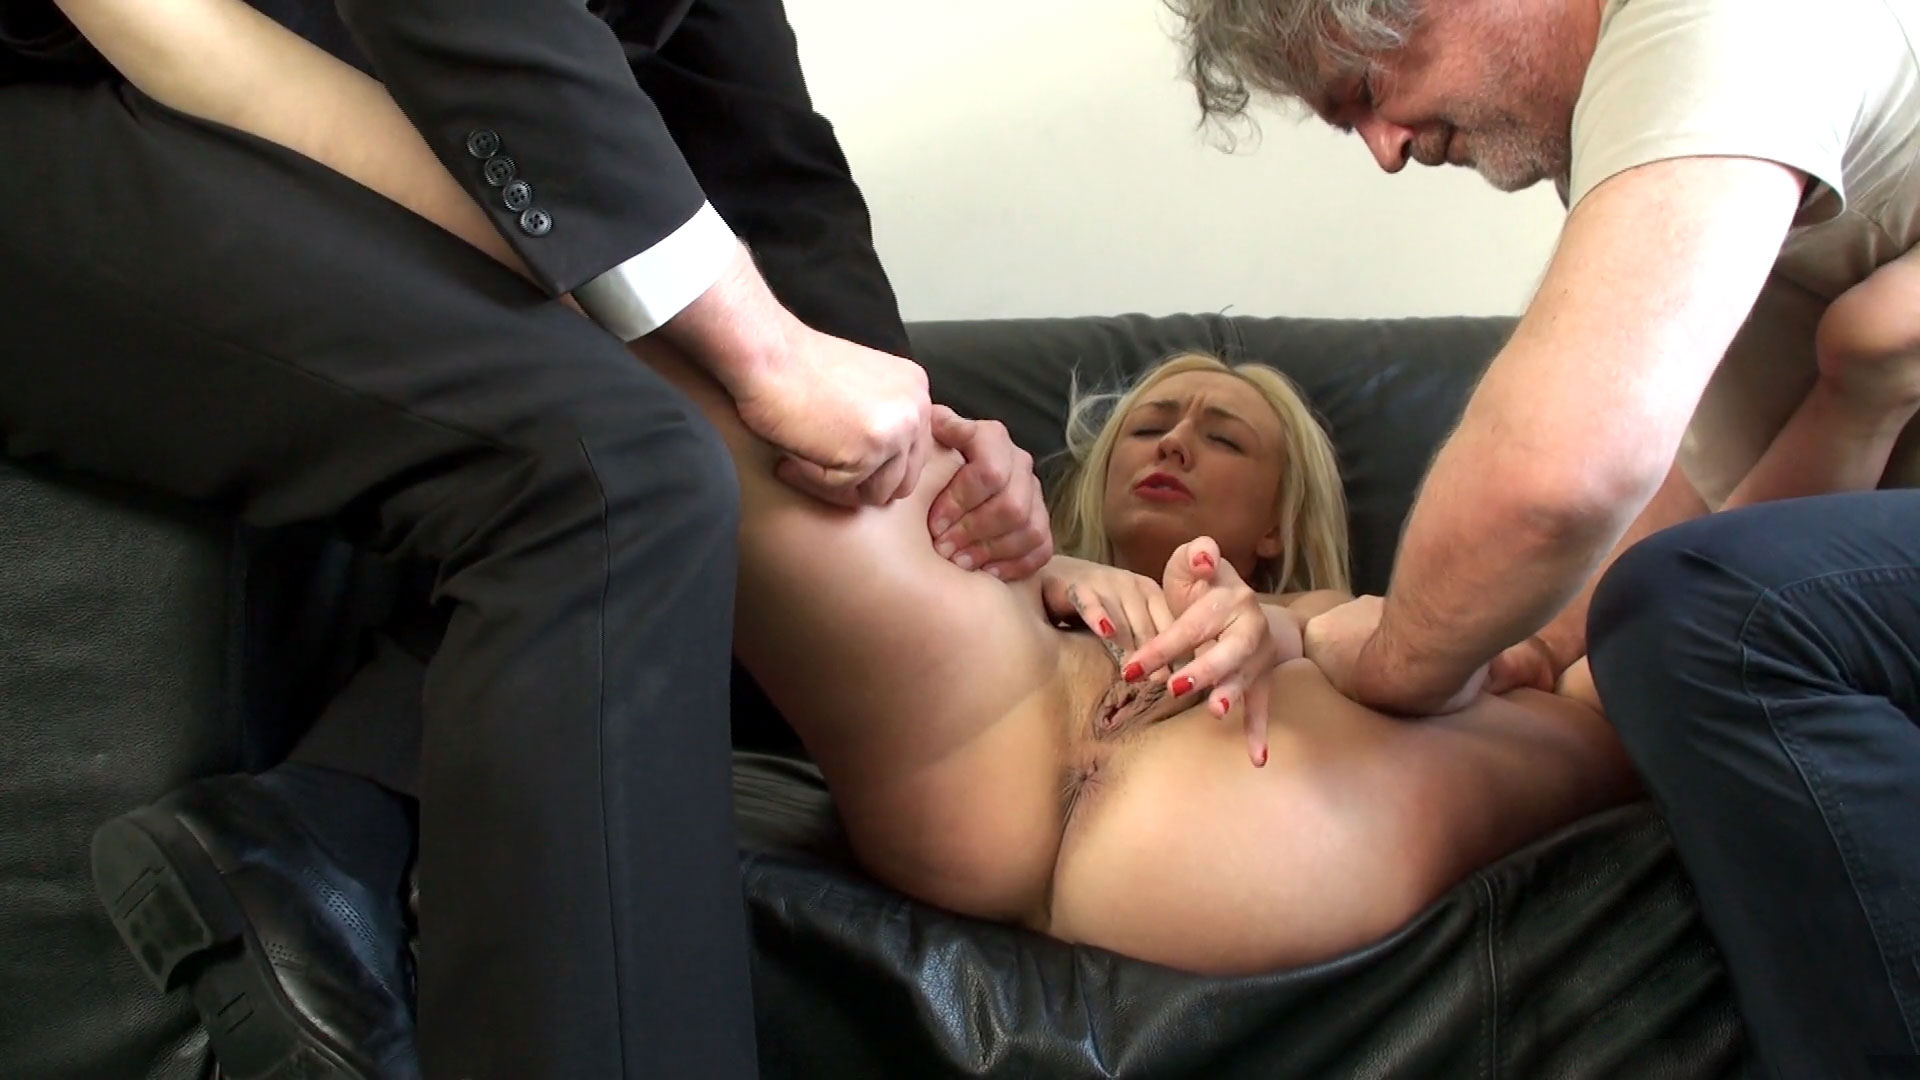 SubSlut Amber Deen: fetish for being squeezed & pinched